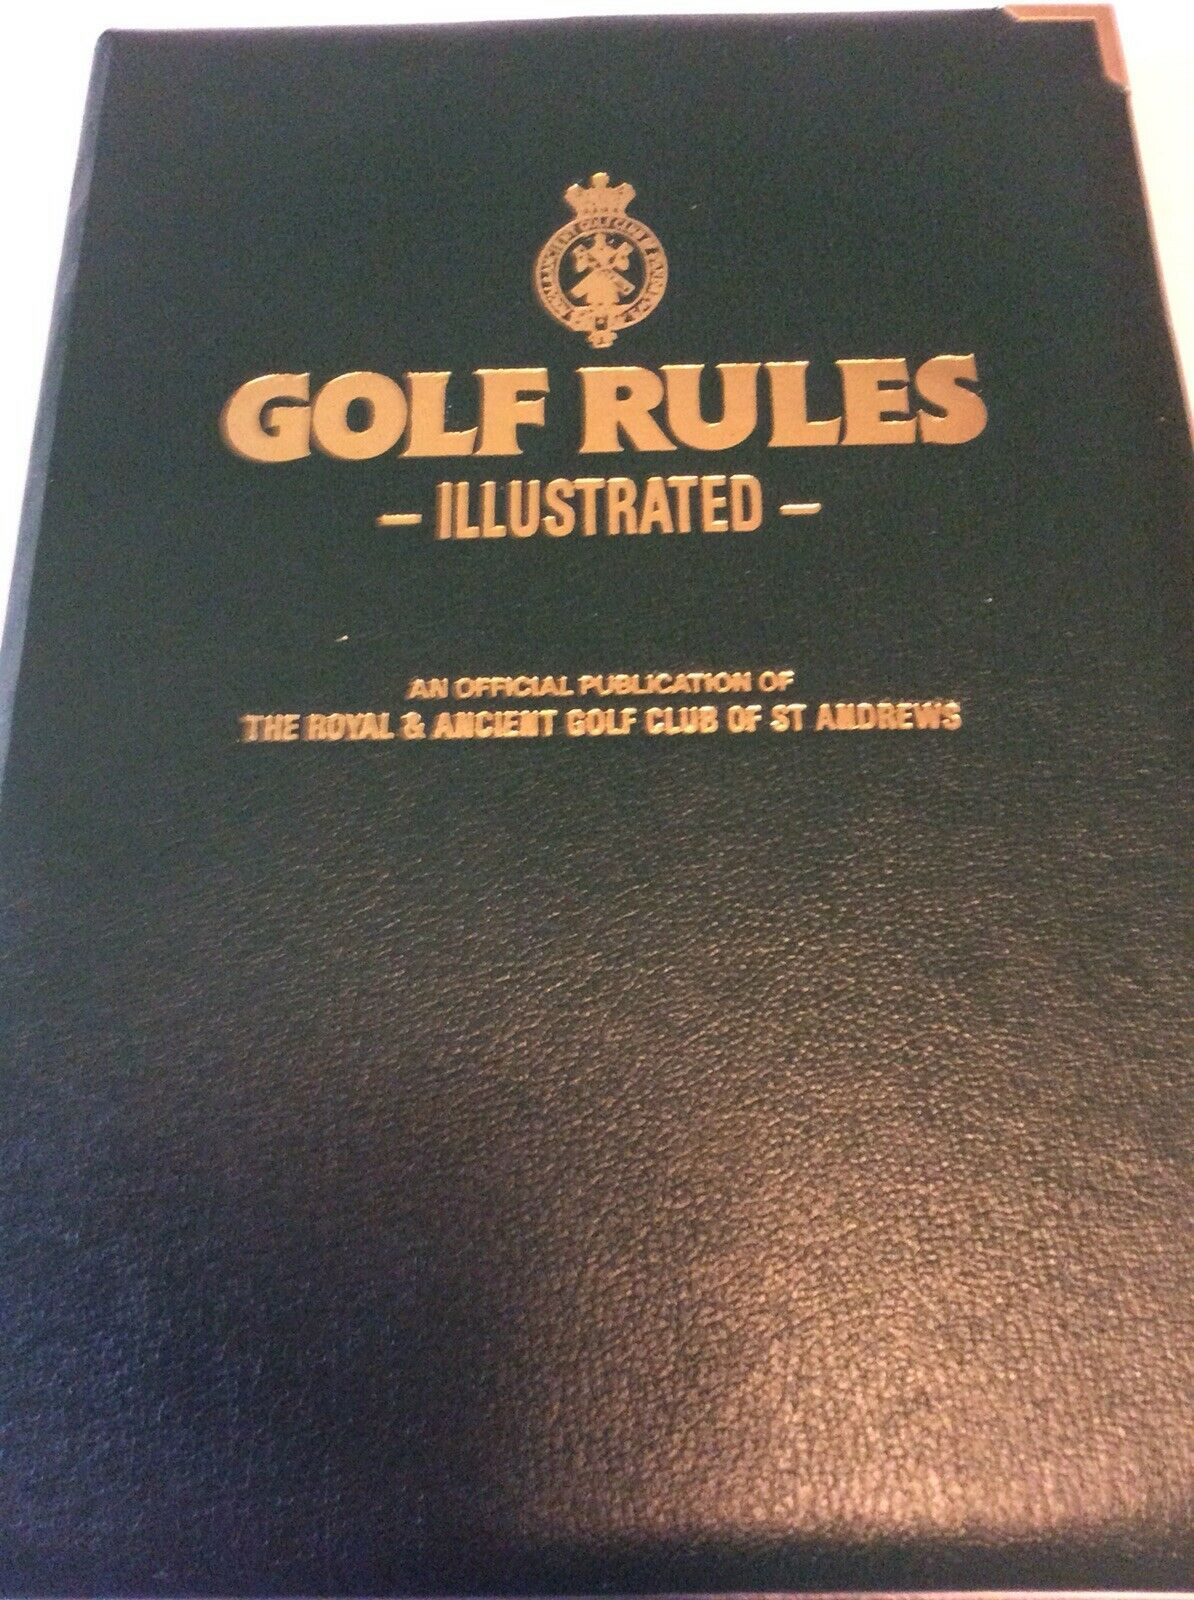 Primary image for GOLF RULES ILLUSTRATED 7th edition 1992 ROYAL & ANCIENT GOLF CLUB OF ST. ANDREWS